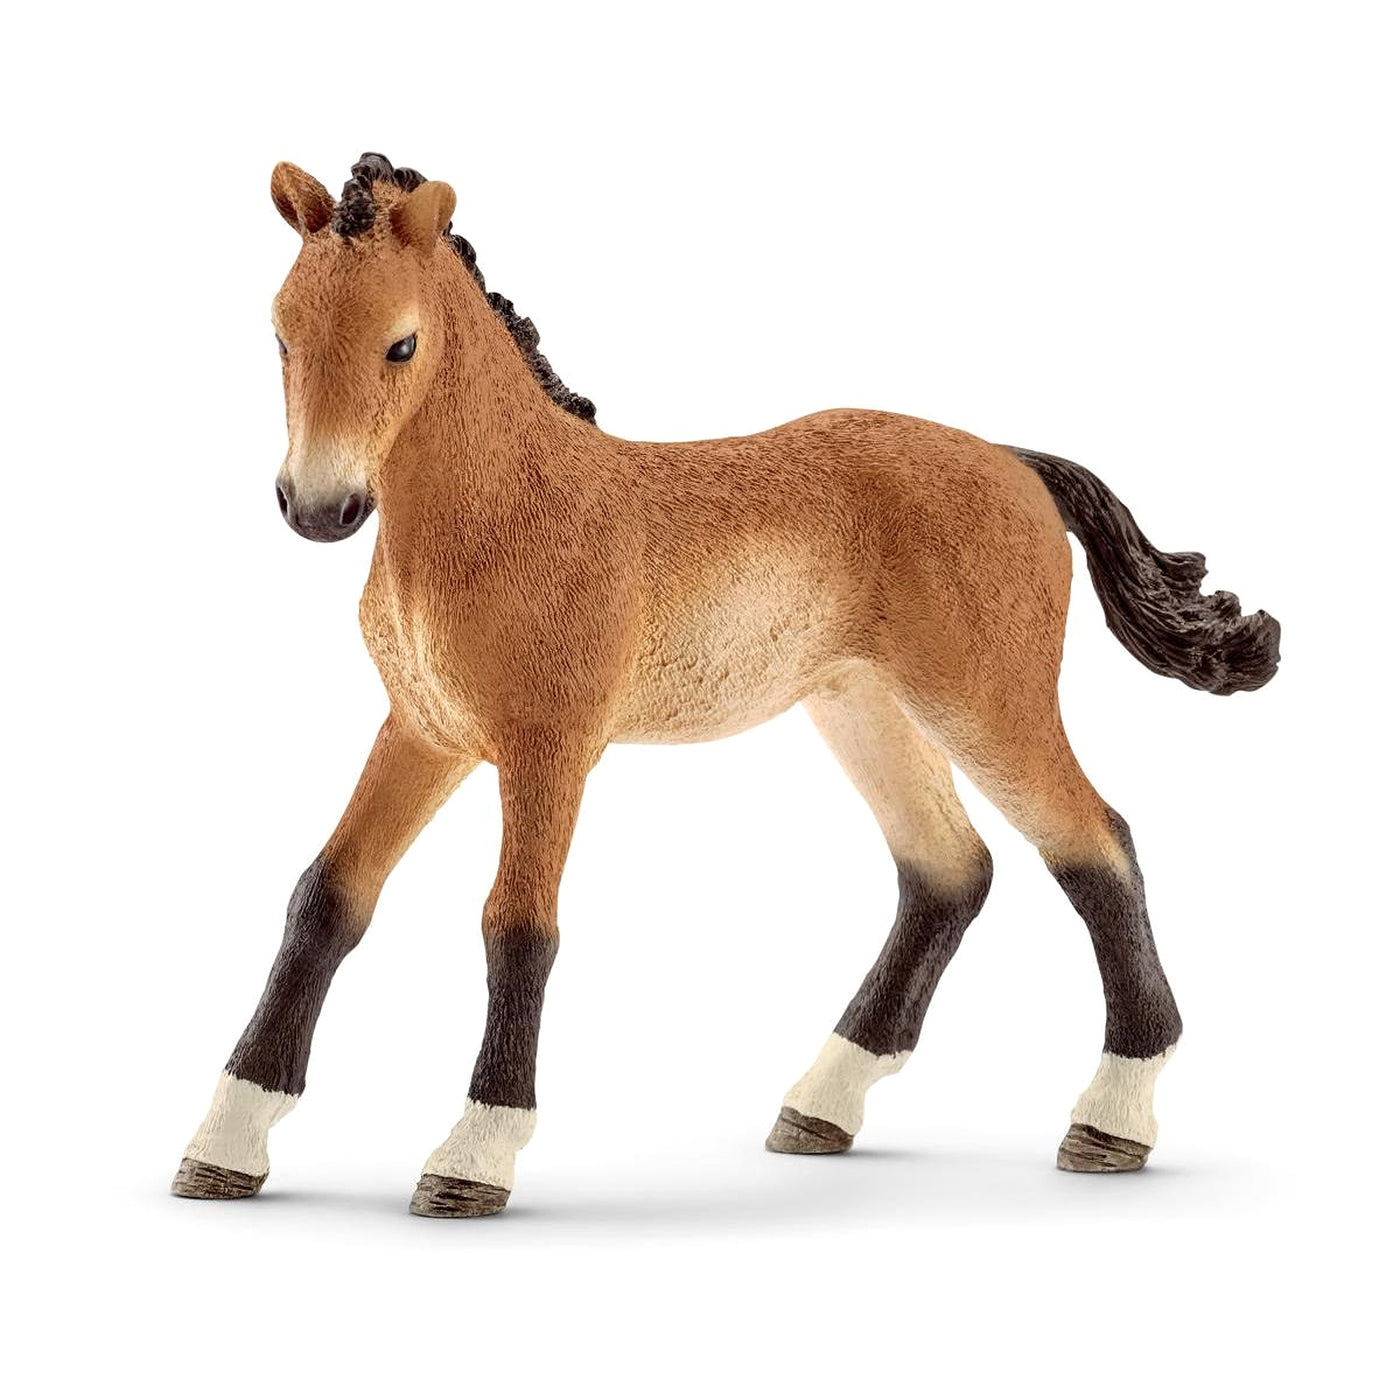 Schleich Farm World Tennessee Walker Foal Toy Figurine